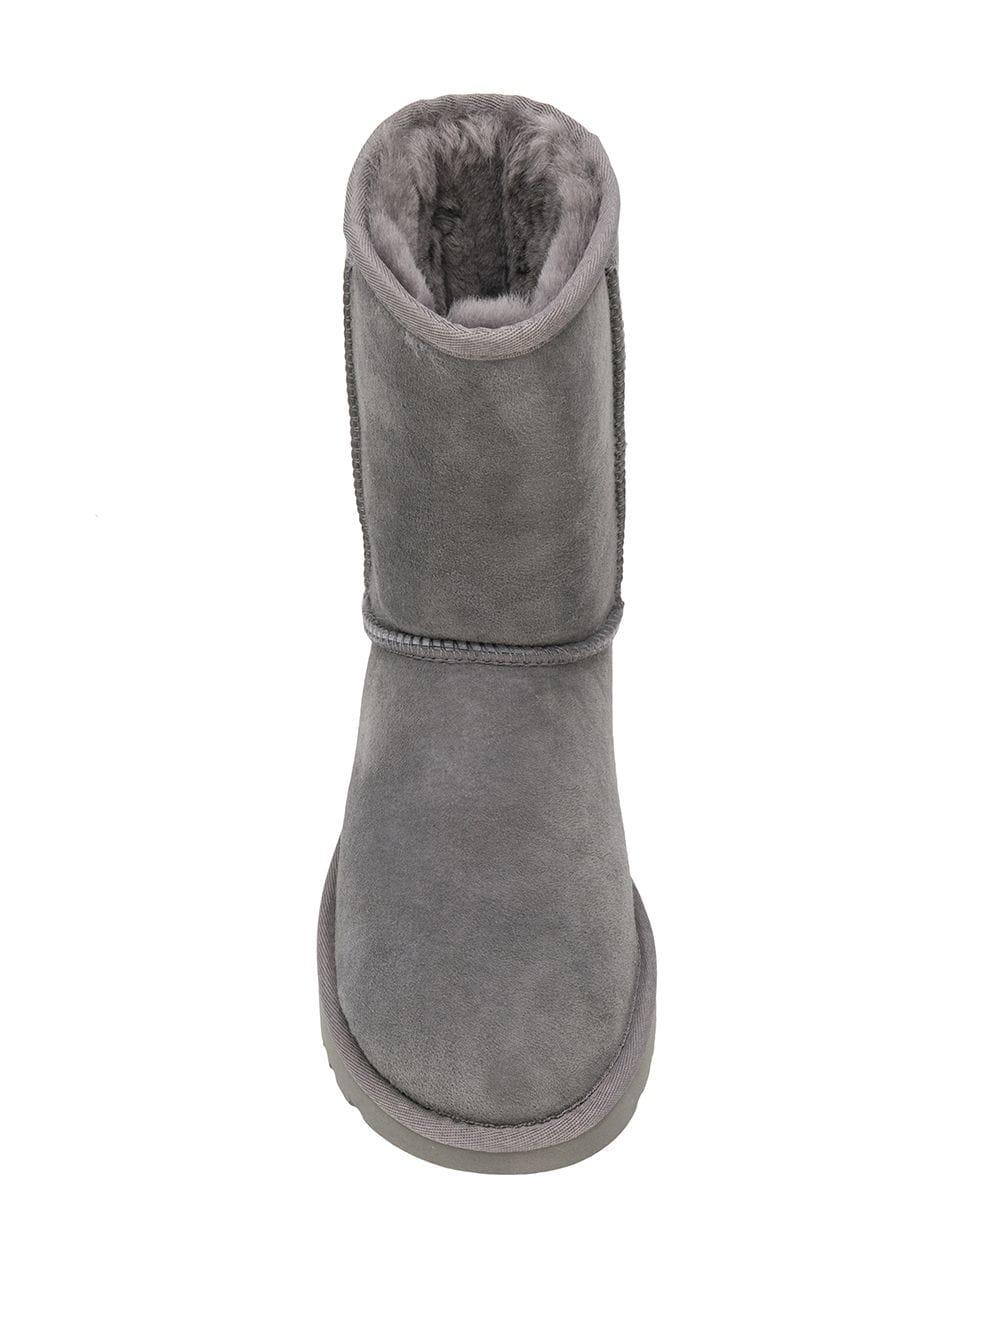 UGG Suede Ankle Boots in Grey (Grey)